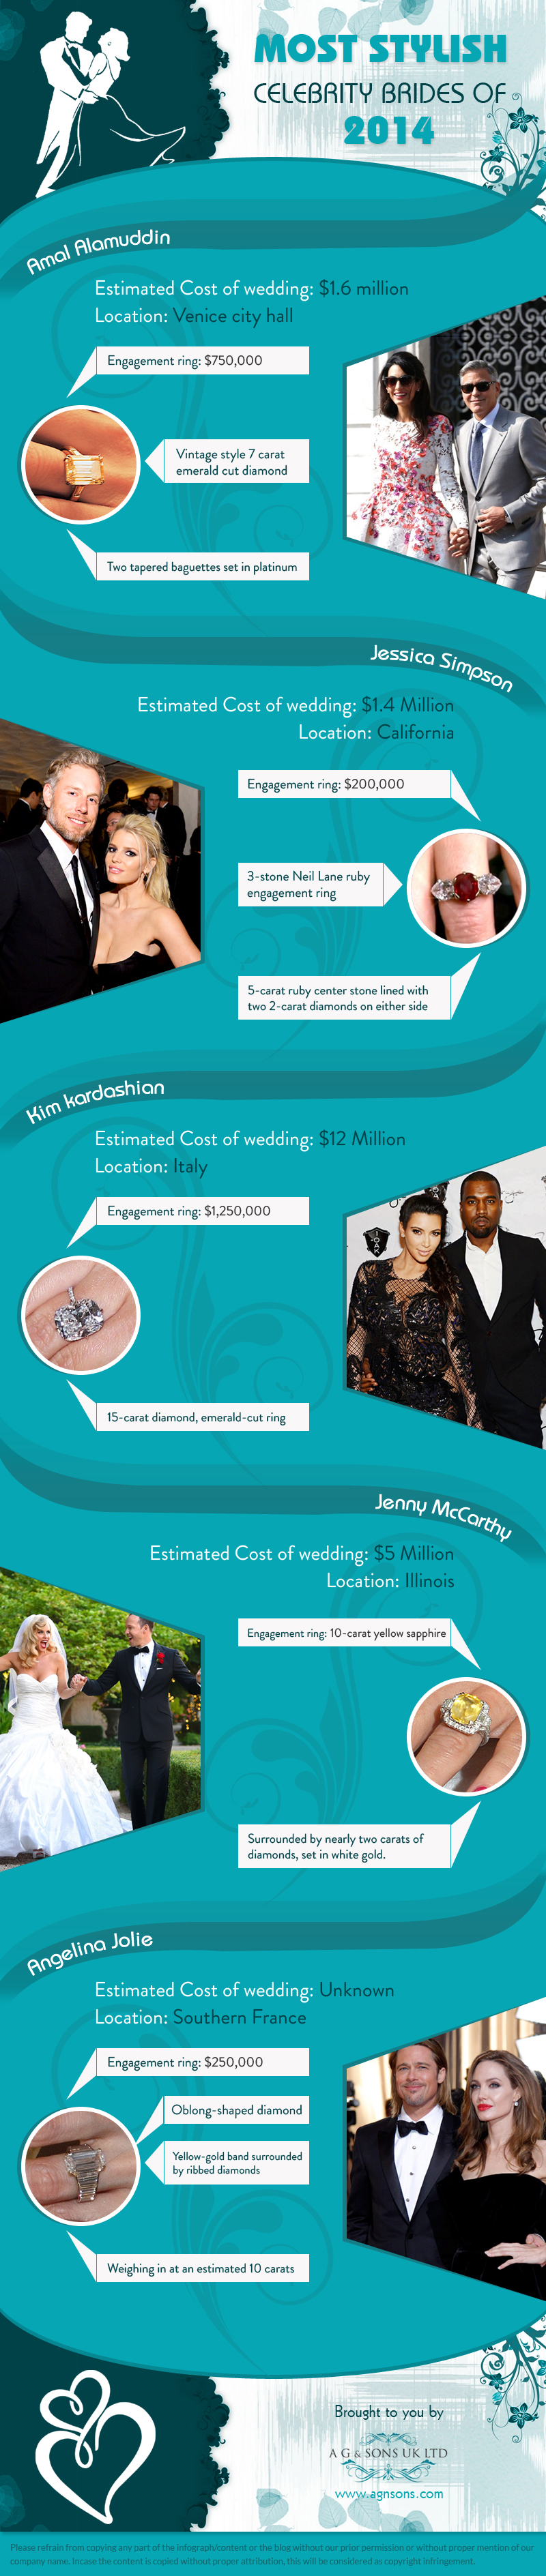 Most Stylish Celebrity Brides of 2014 by AG & Sons